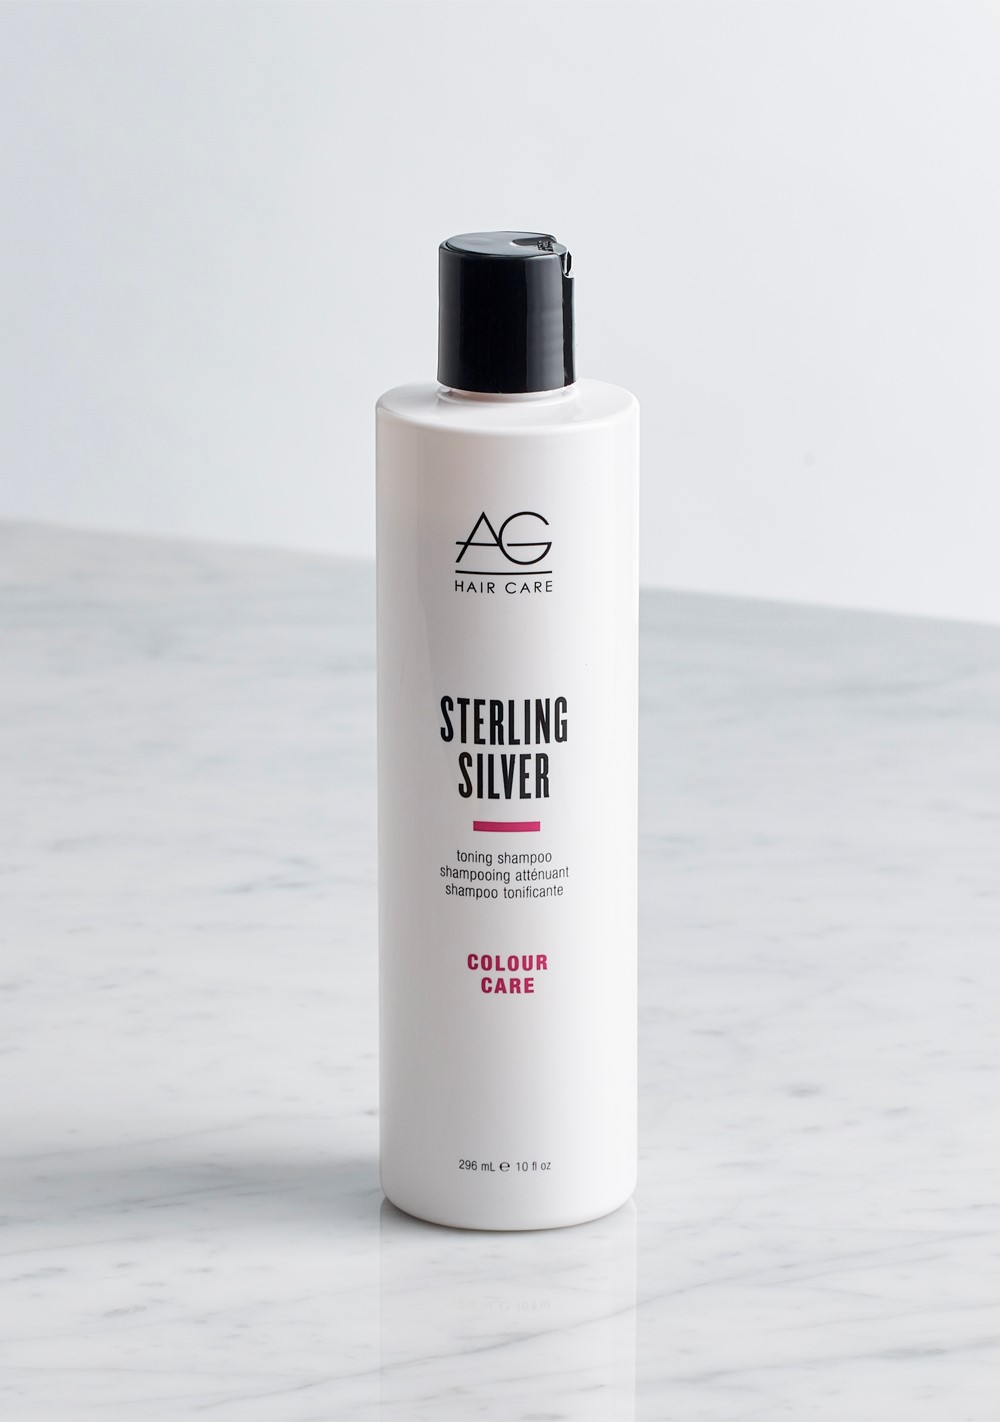 AG Hair's Sterling Silver Toning Shampoo and Conditioner Take Clients from Brassy to Bright